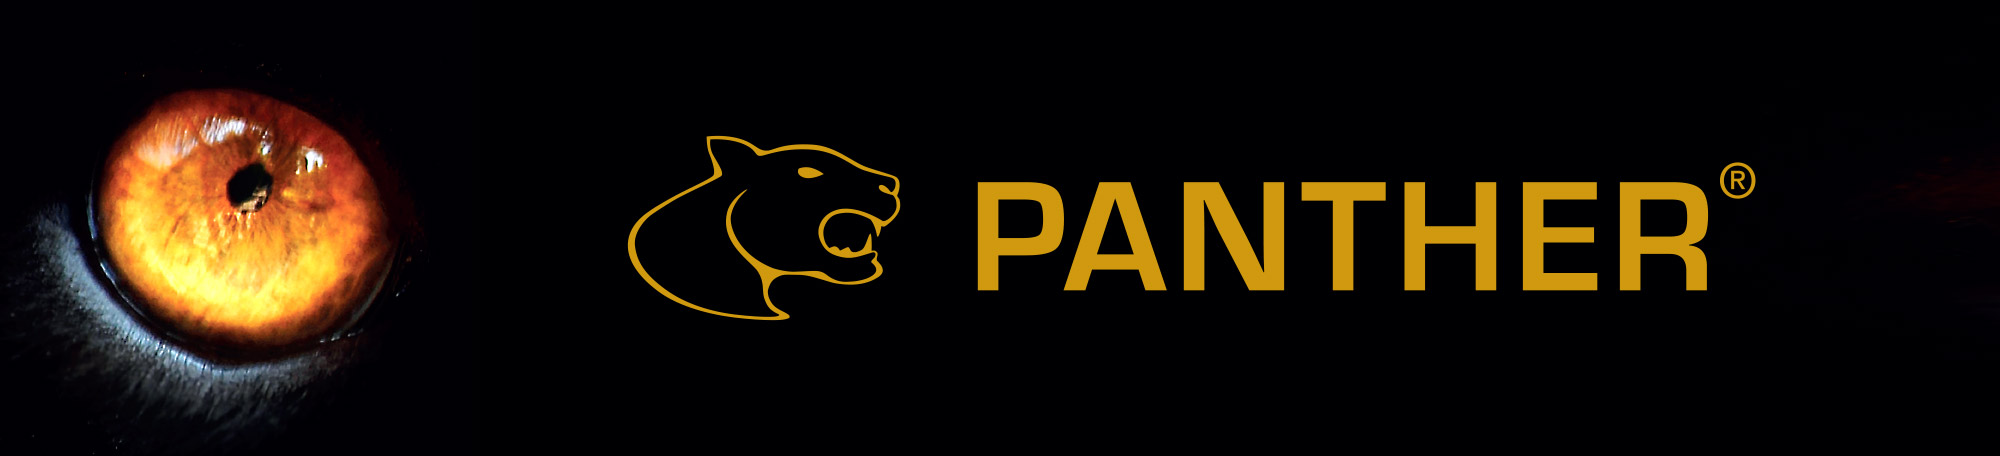 Panther-chainsaw-mills-logo